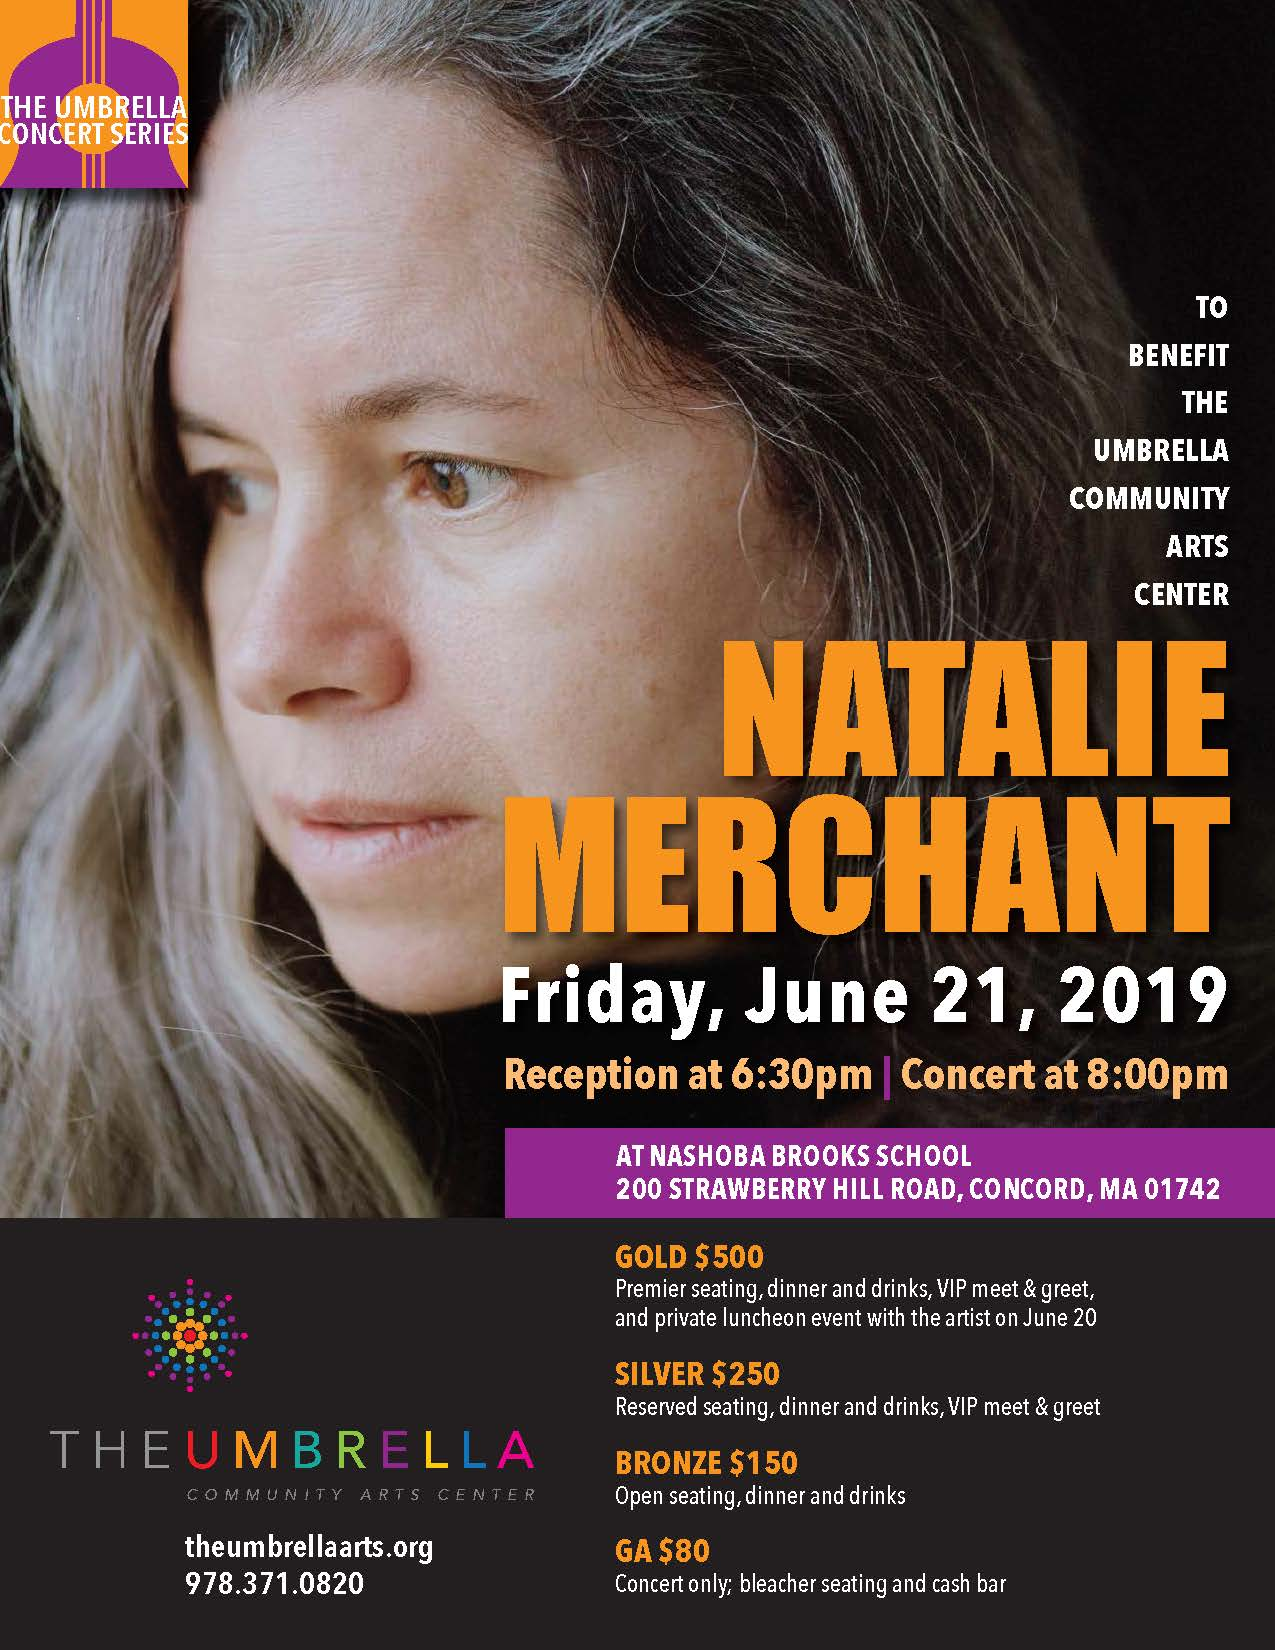 Natalie Merchant Concert at The Umbrella